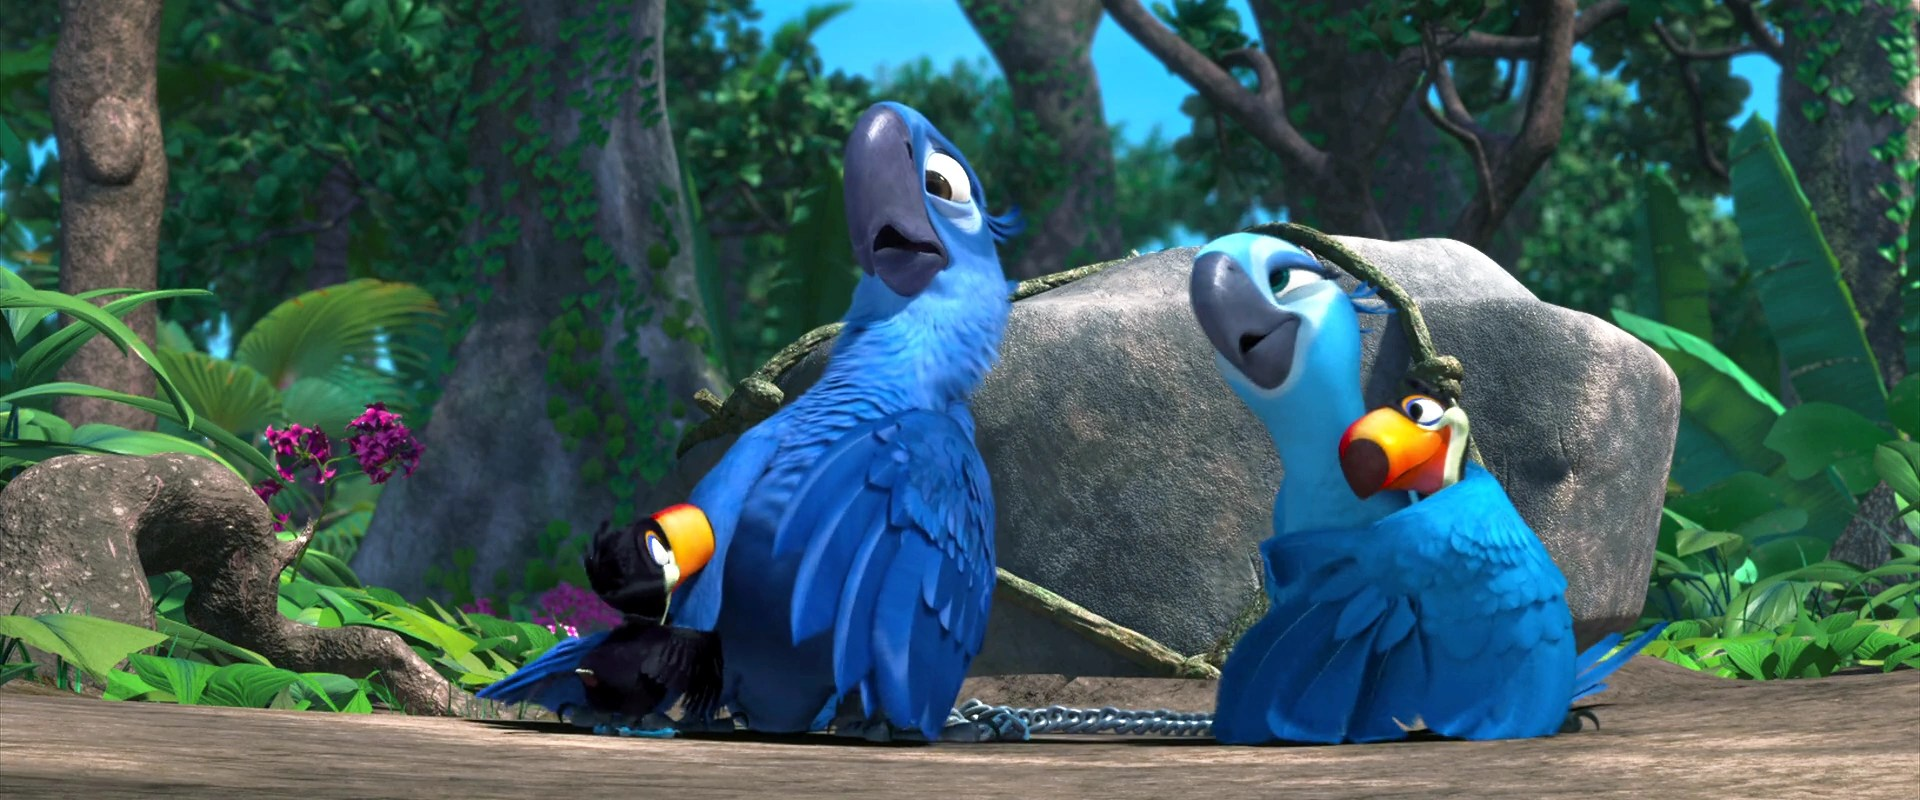 image rio movie wallpaper blu and jewel with rafael s kid png